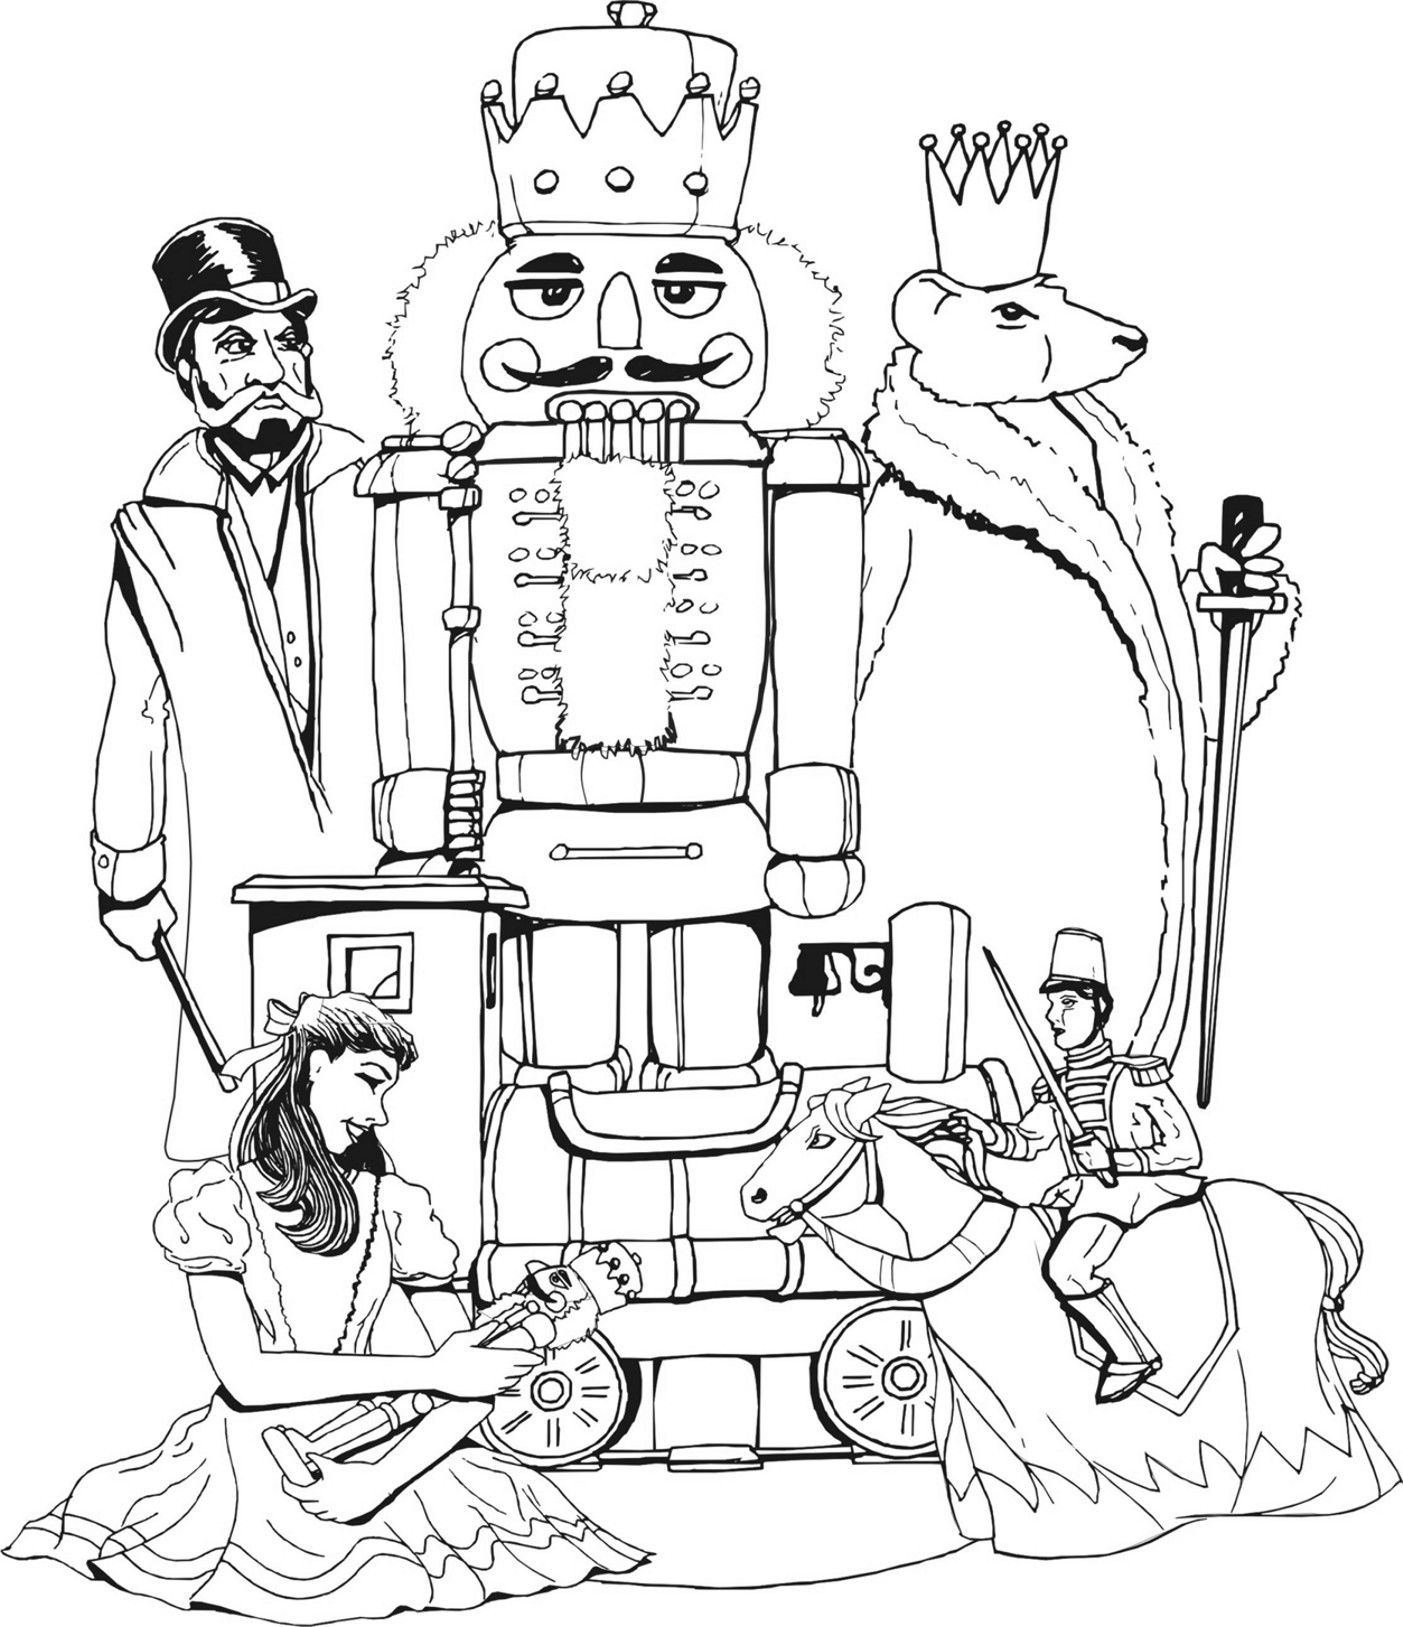 Coloring page to do while listening to nutcracker